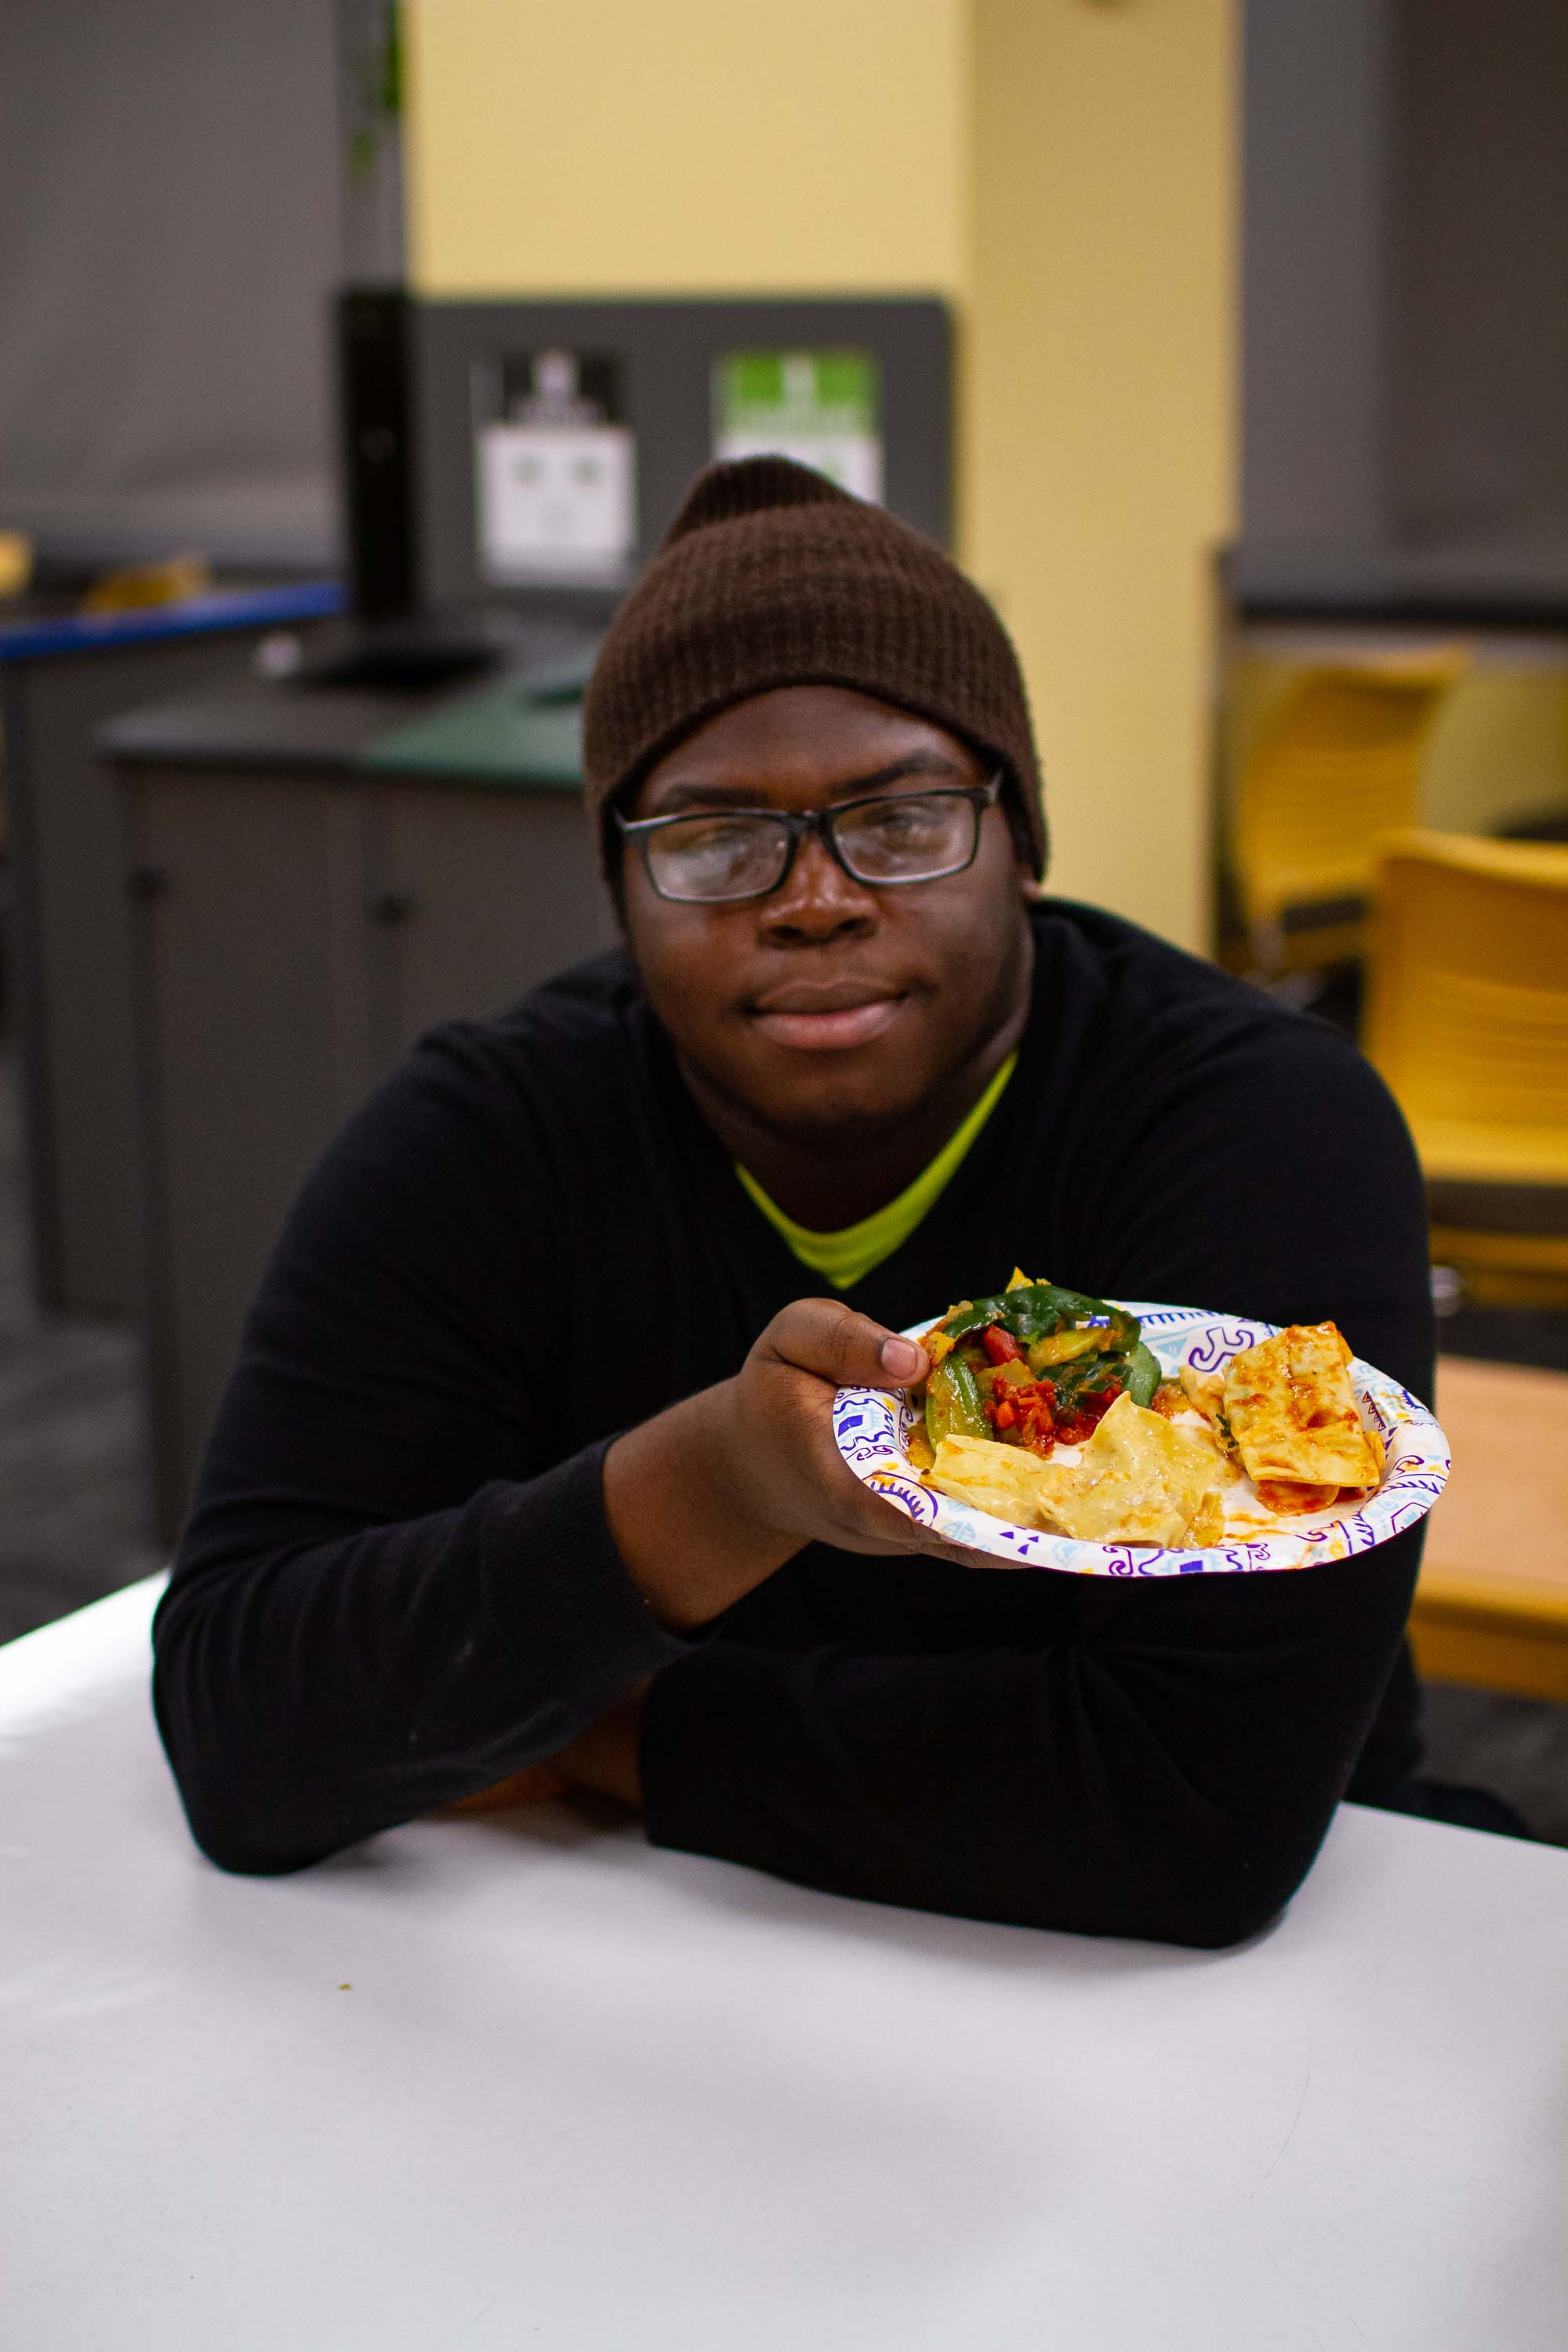 CHEW-MBC president Tola Abu '20 shows off a finished meal.